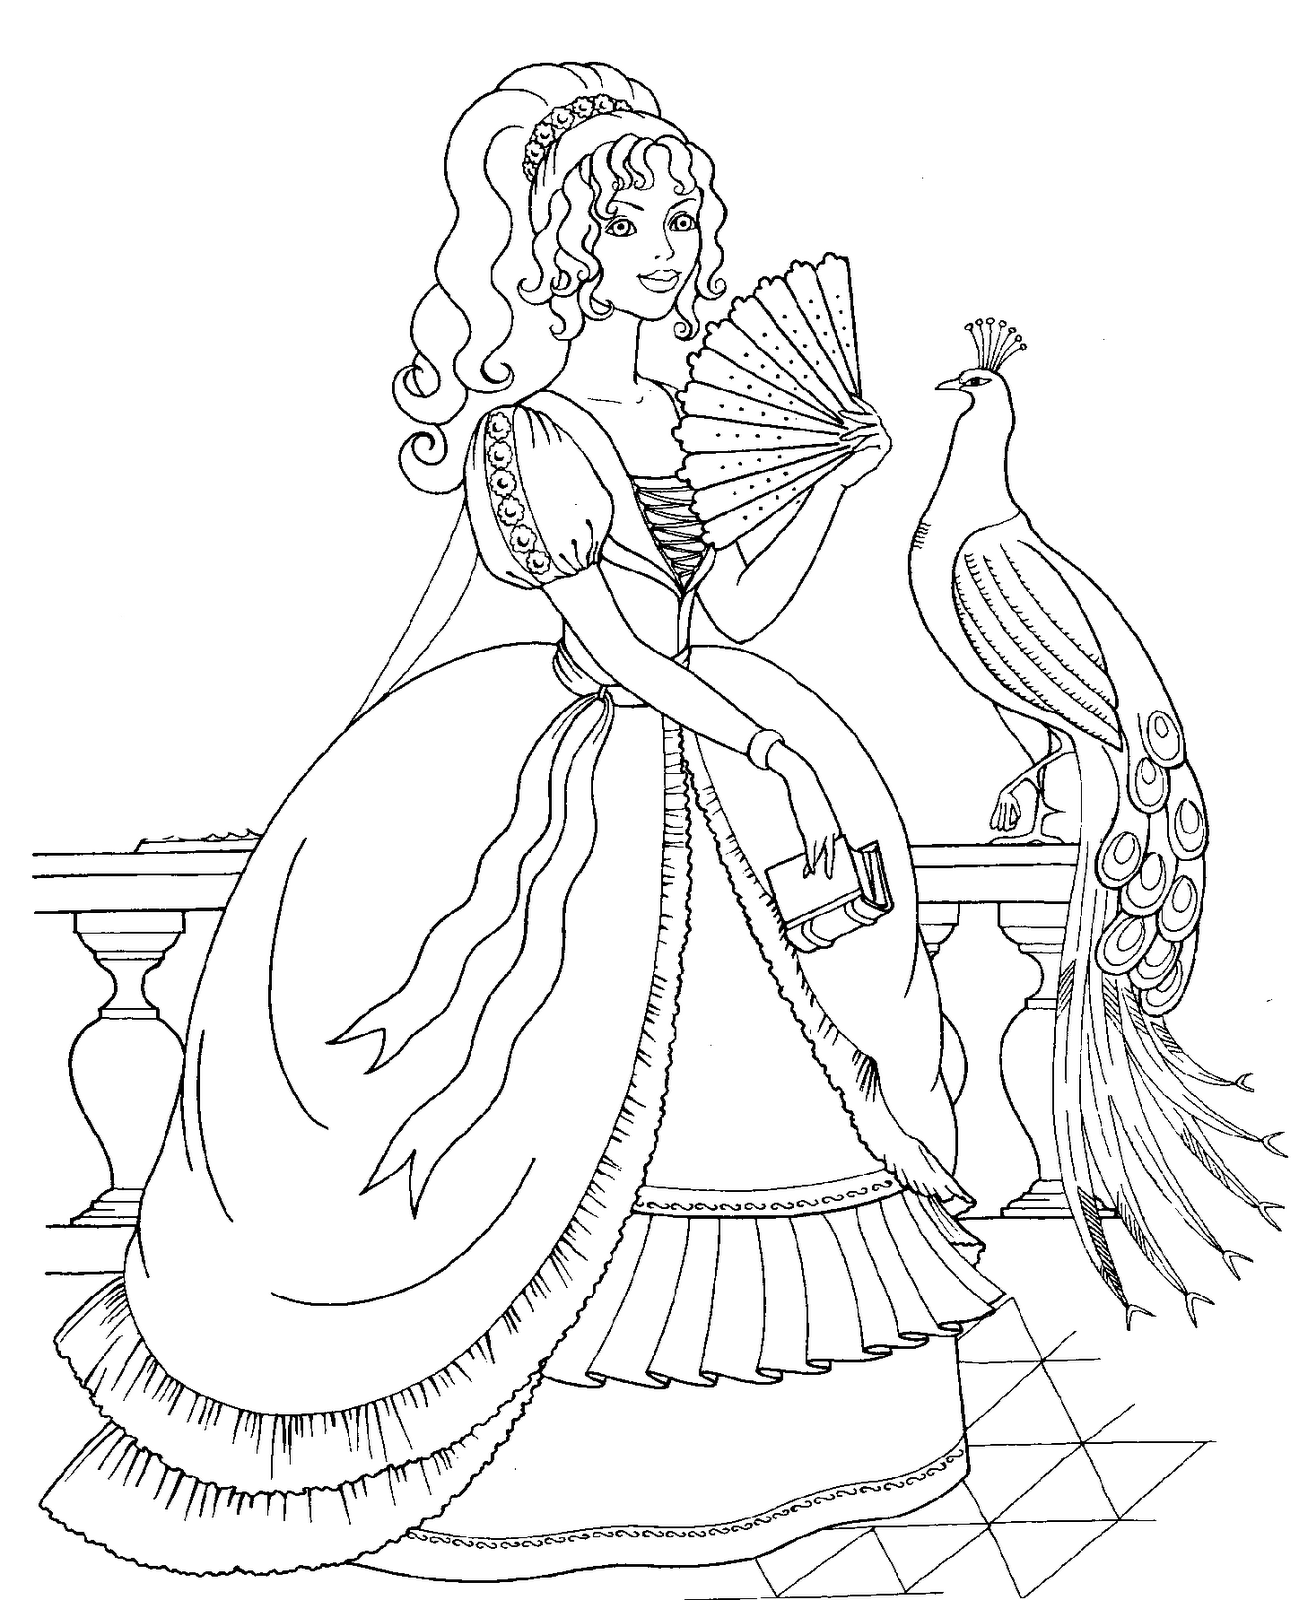 Disney Princess And Animals Coloring Pages To Kids Princess Coloring Page